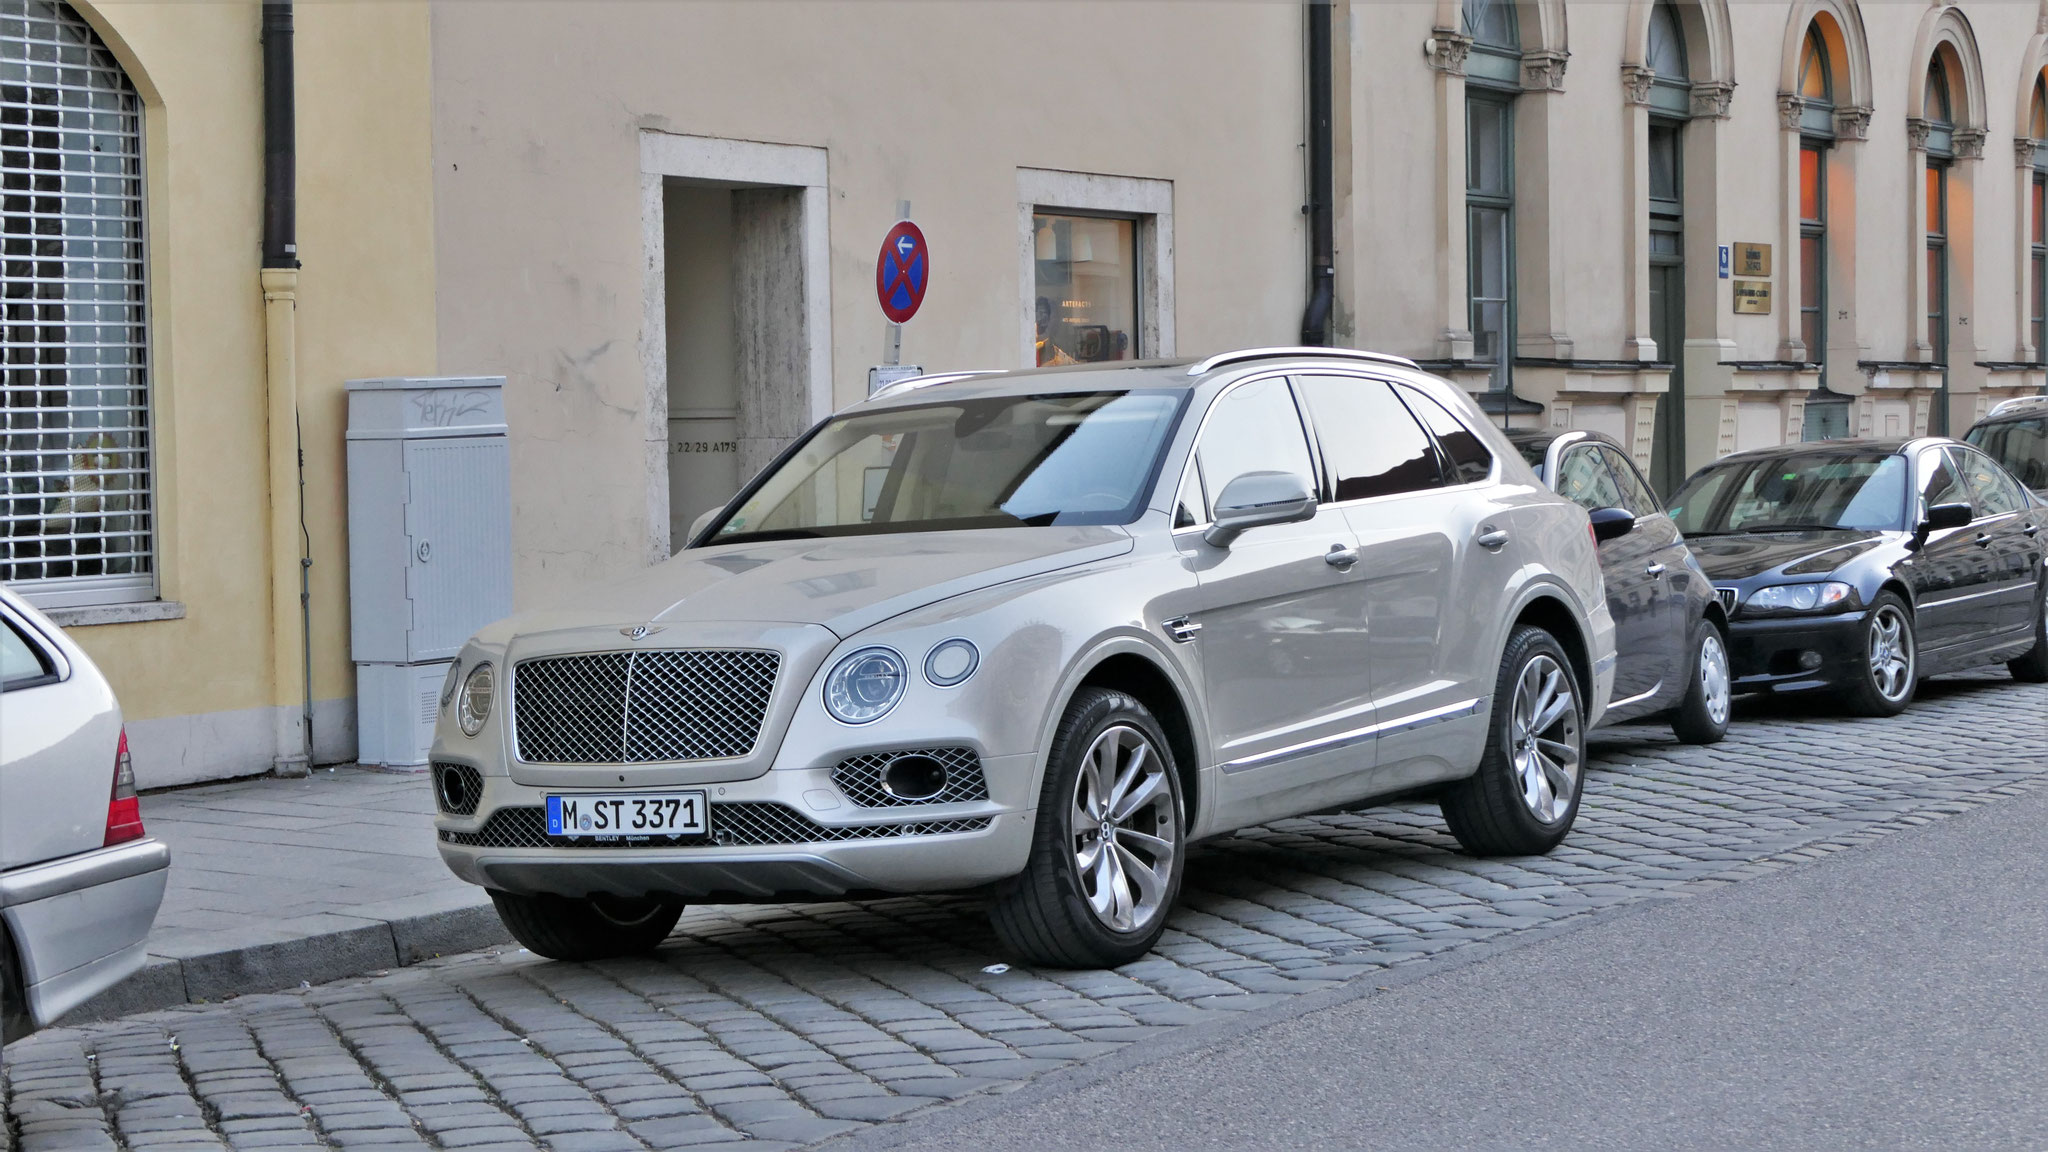 Bentley Bentayga - M-ST-3371